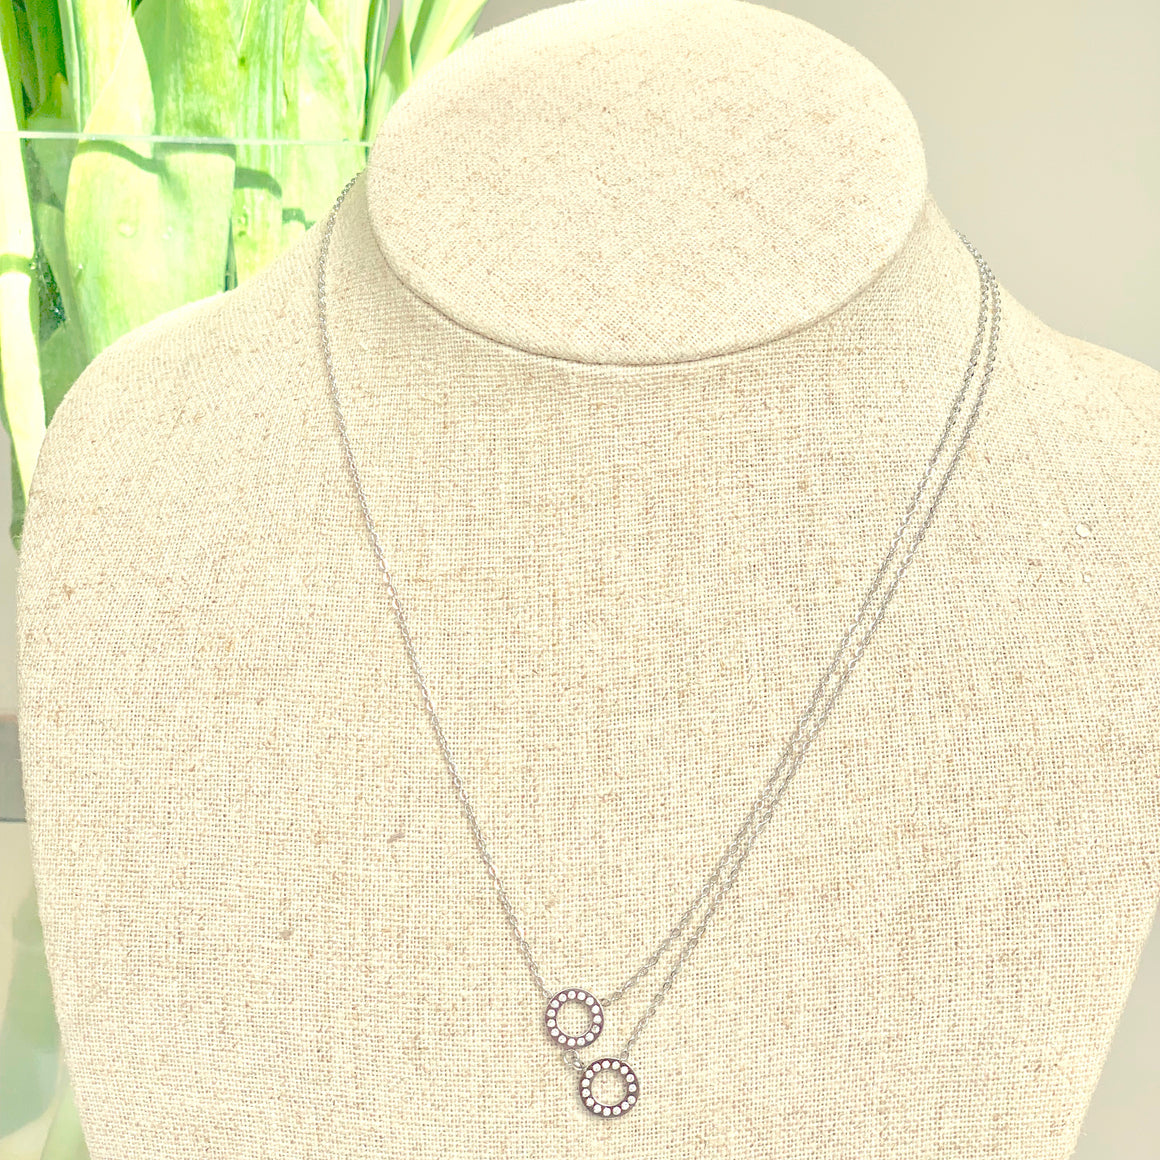 Junie Love Circle Necklace - Villancher Gifts &  Fashion Accessories